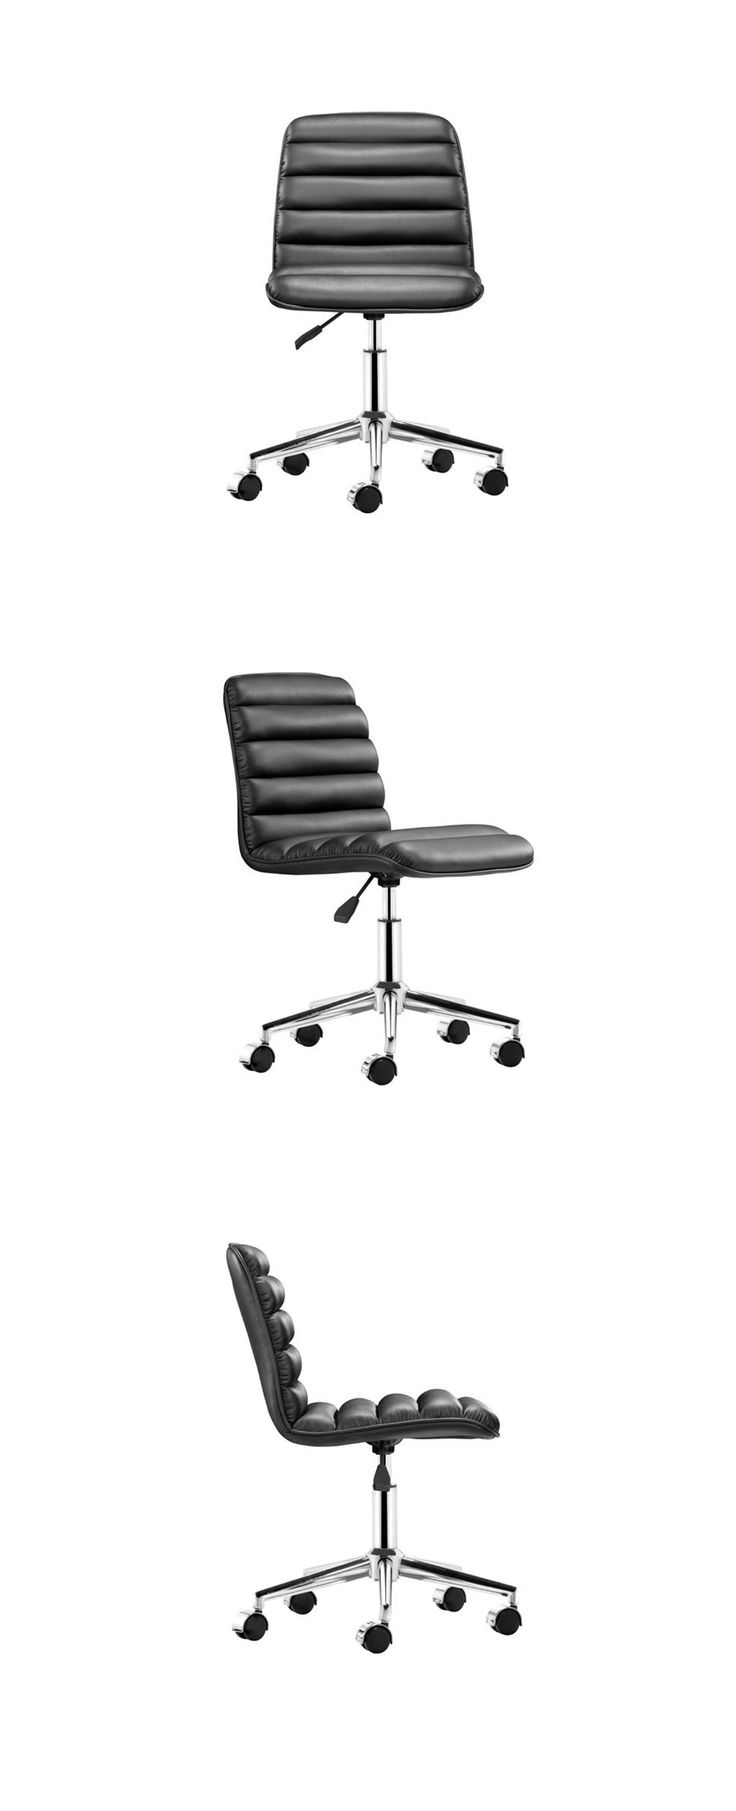 25 best ideas about sillas para oficina on pinterest for Sillas ergonomicas para pc